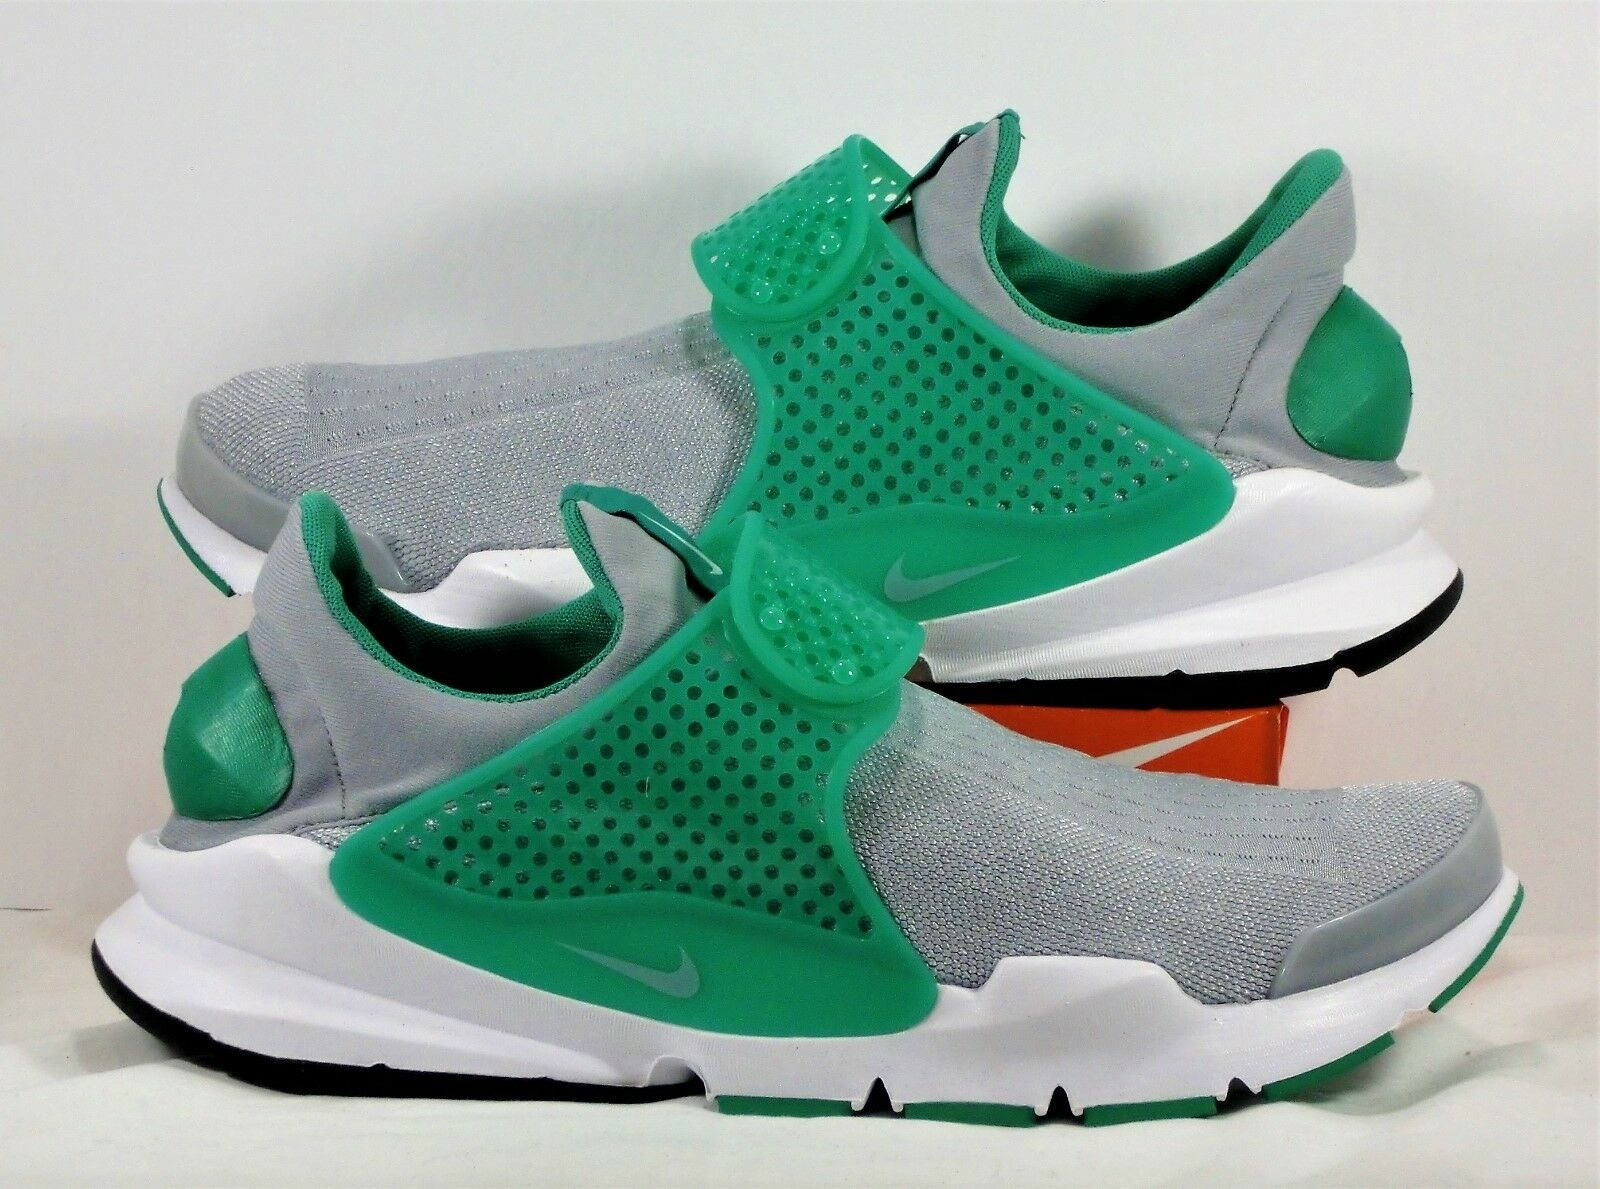 Nike Sock Dart KJCRD Wolf Grey Green Running Training Shoes Sz 11 NEW 819686 004